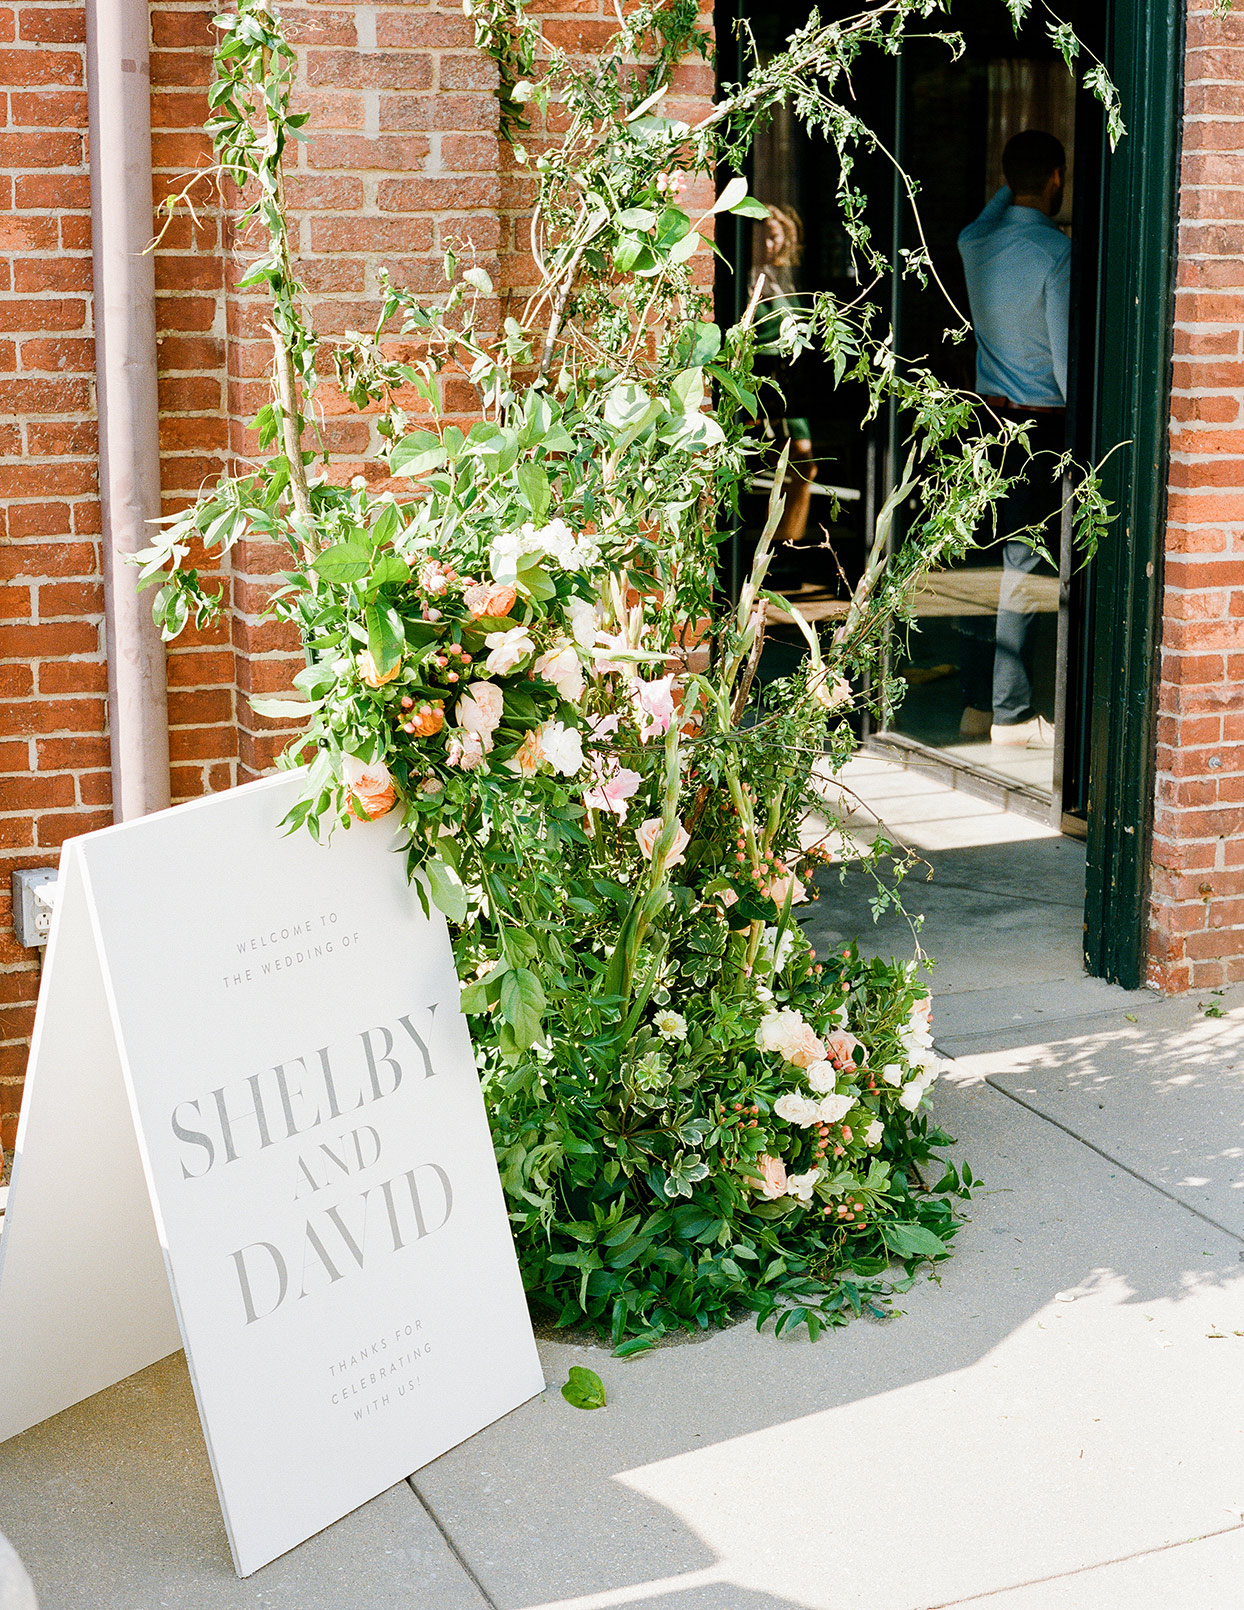 shelby david wedding sign and floral display